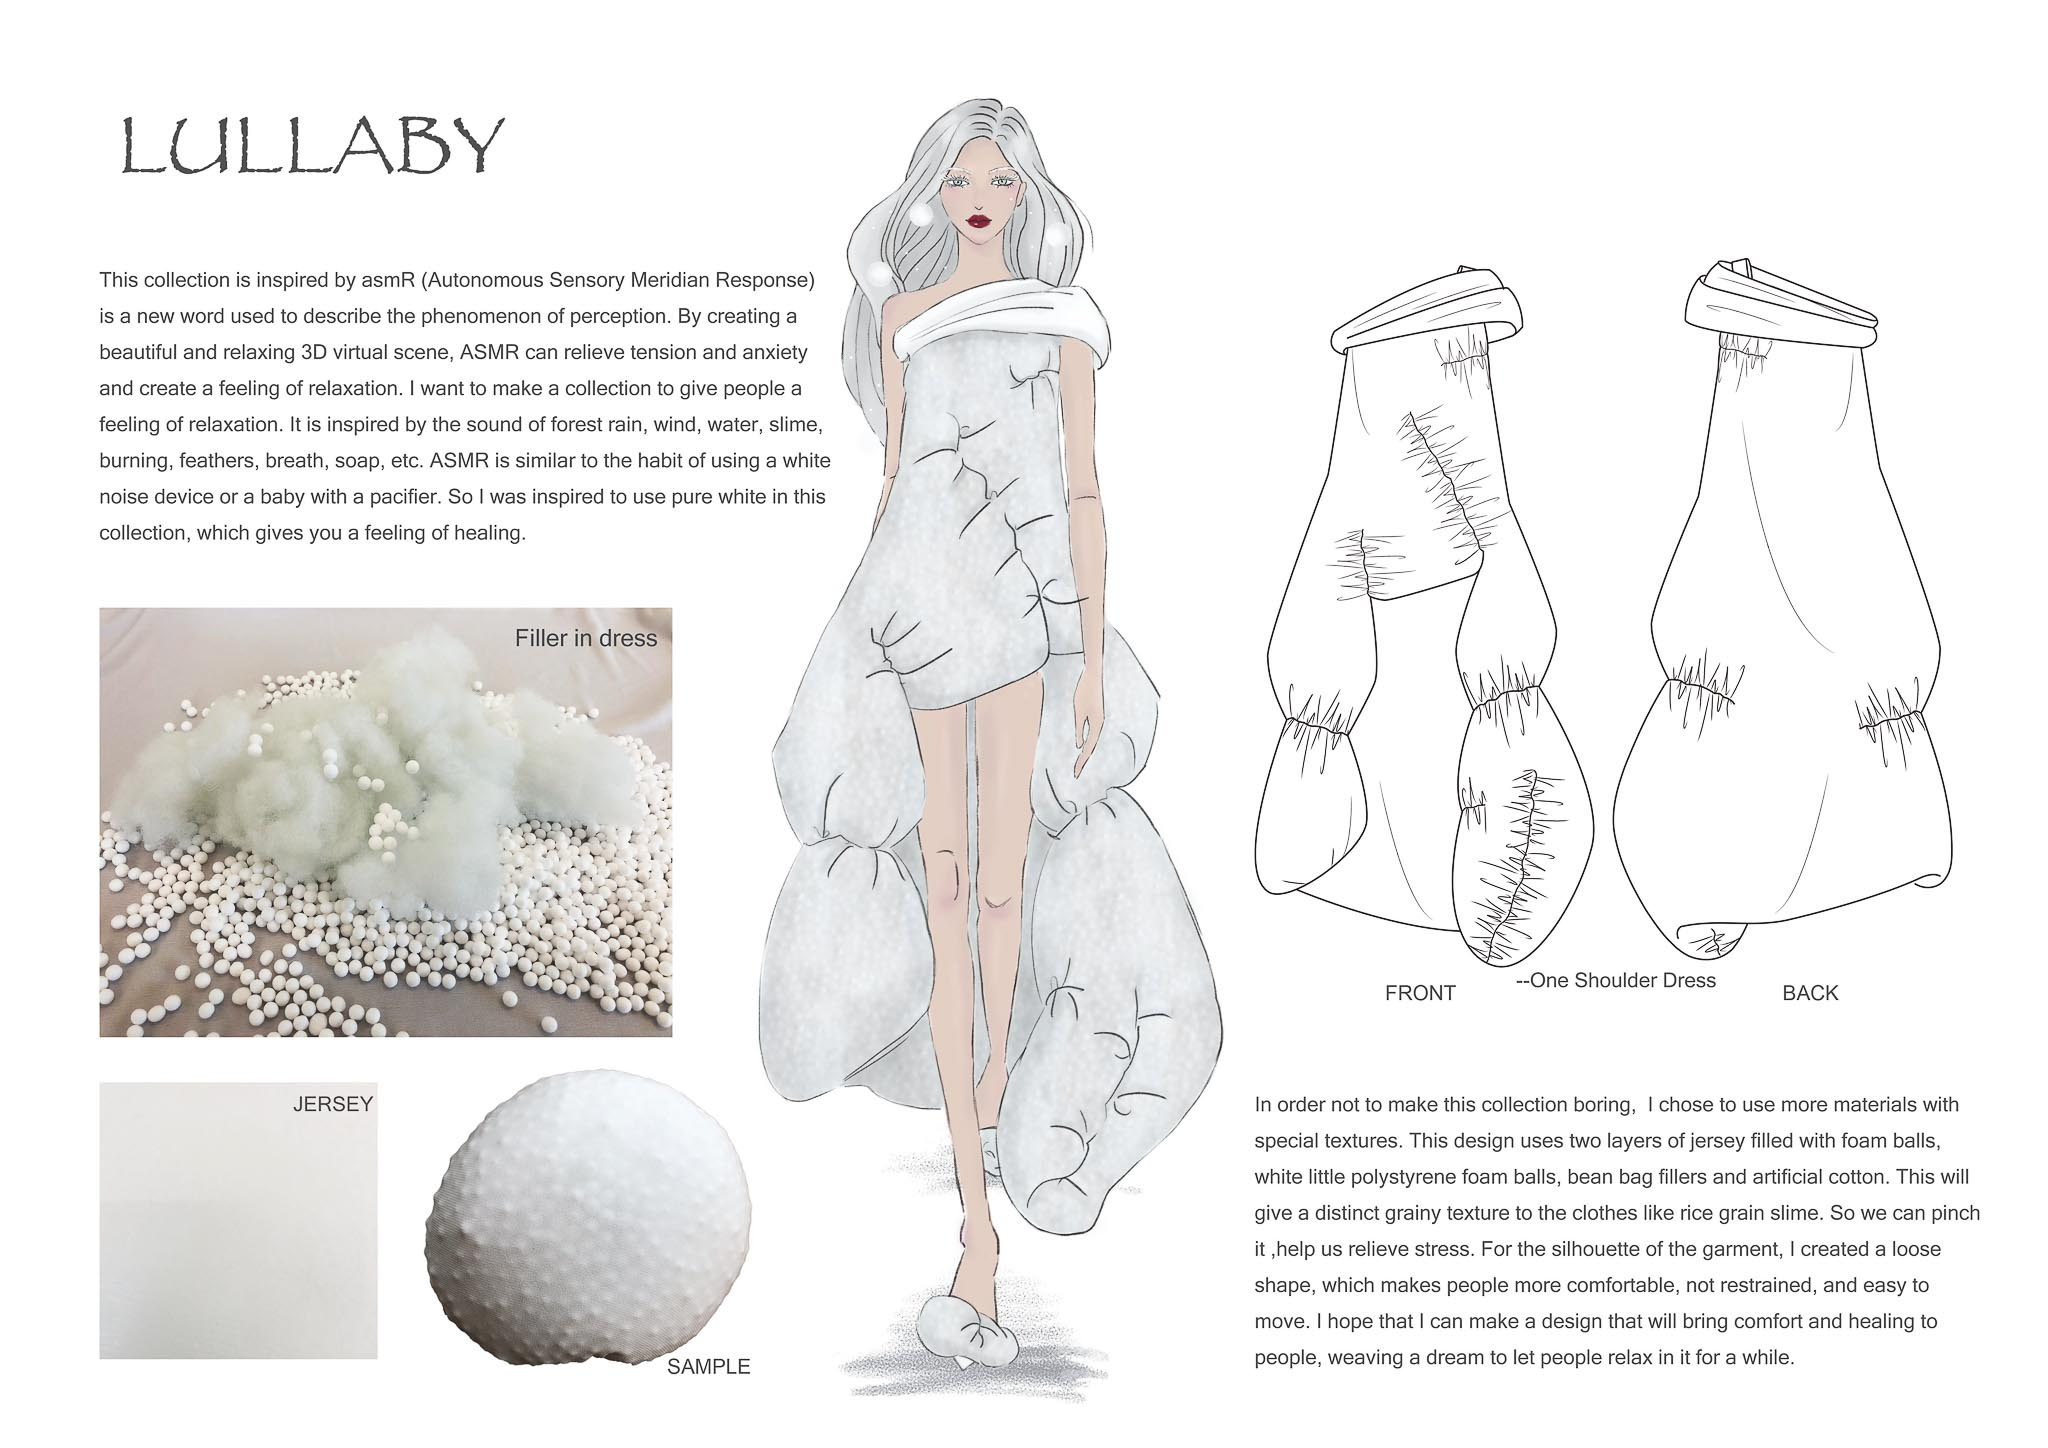 Lullaby: Wei Zhang, China, Student, Raffles Design Institute Singapore